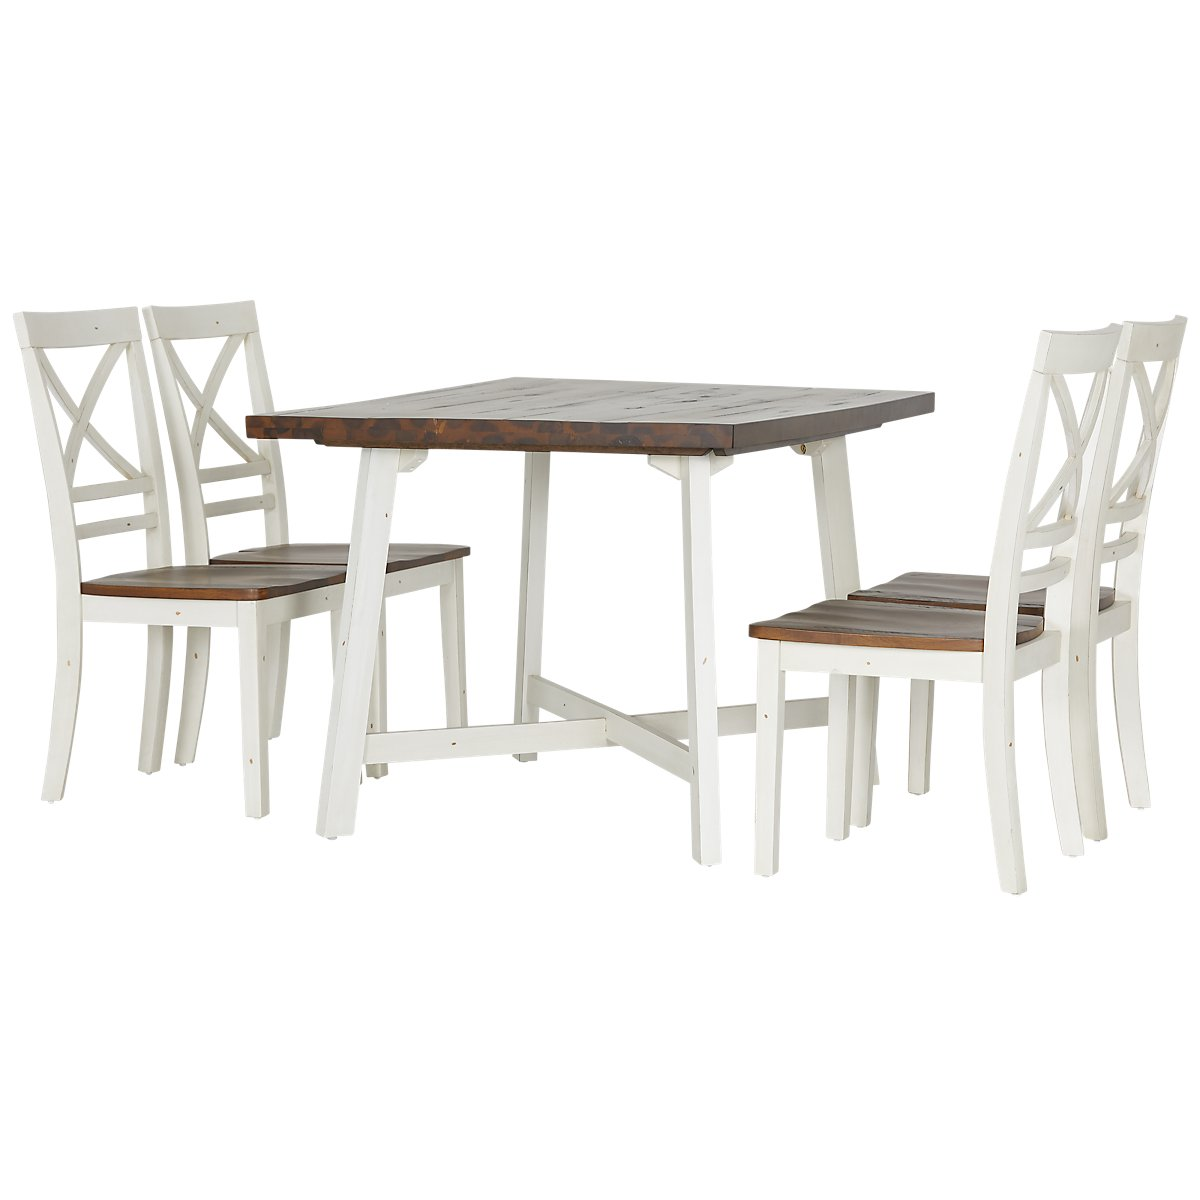 City Furniture Amelia TwoTone Rectangular Table Chairs - Rectangle table with 4 chairs